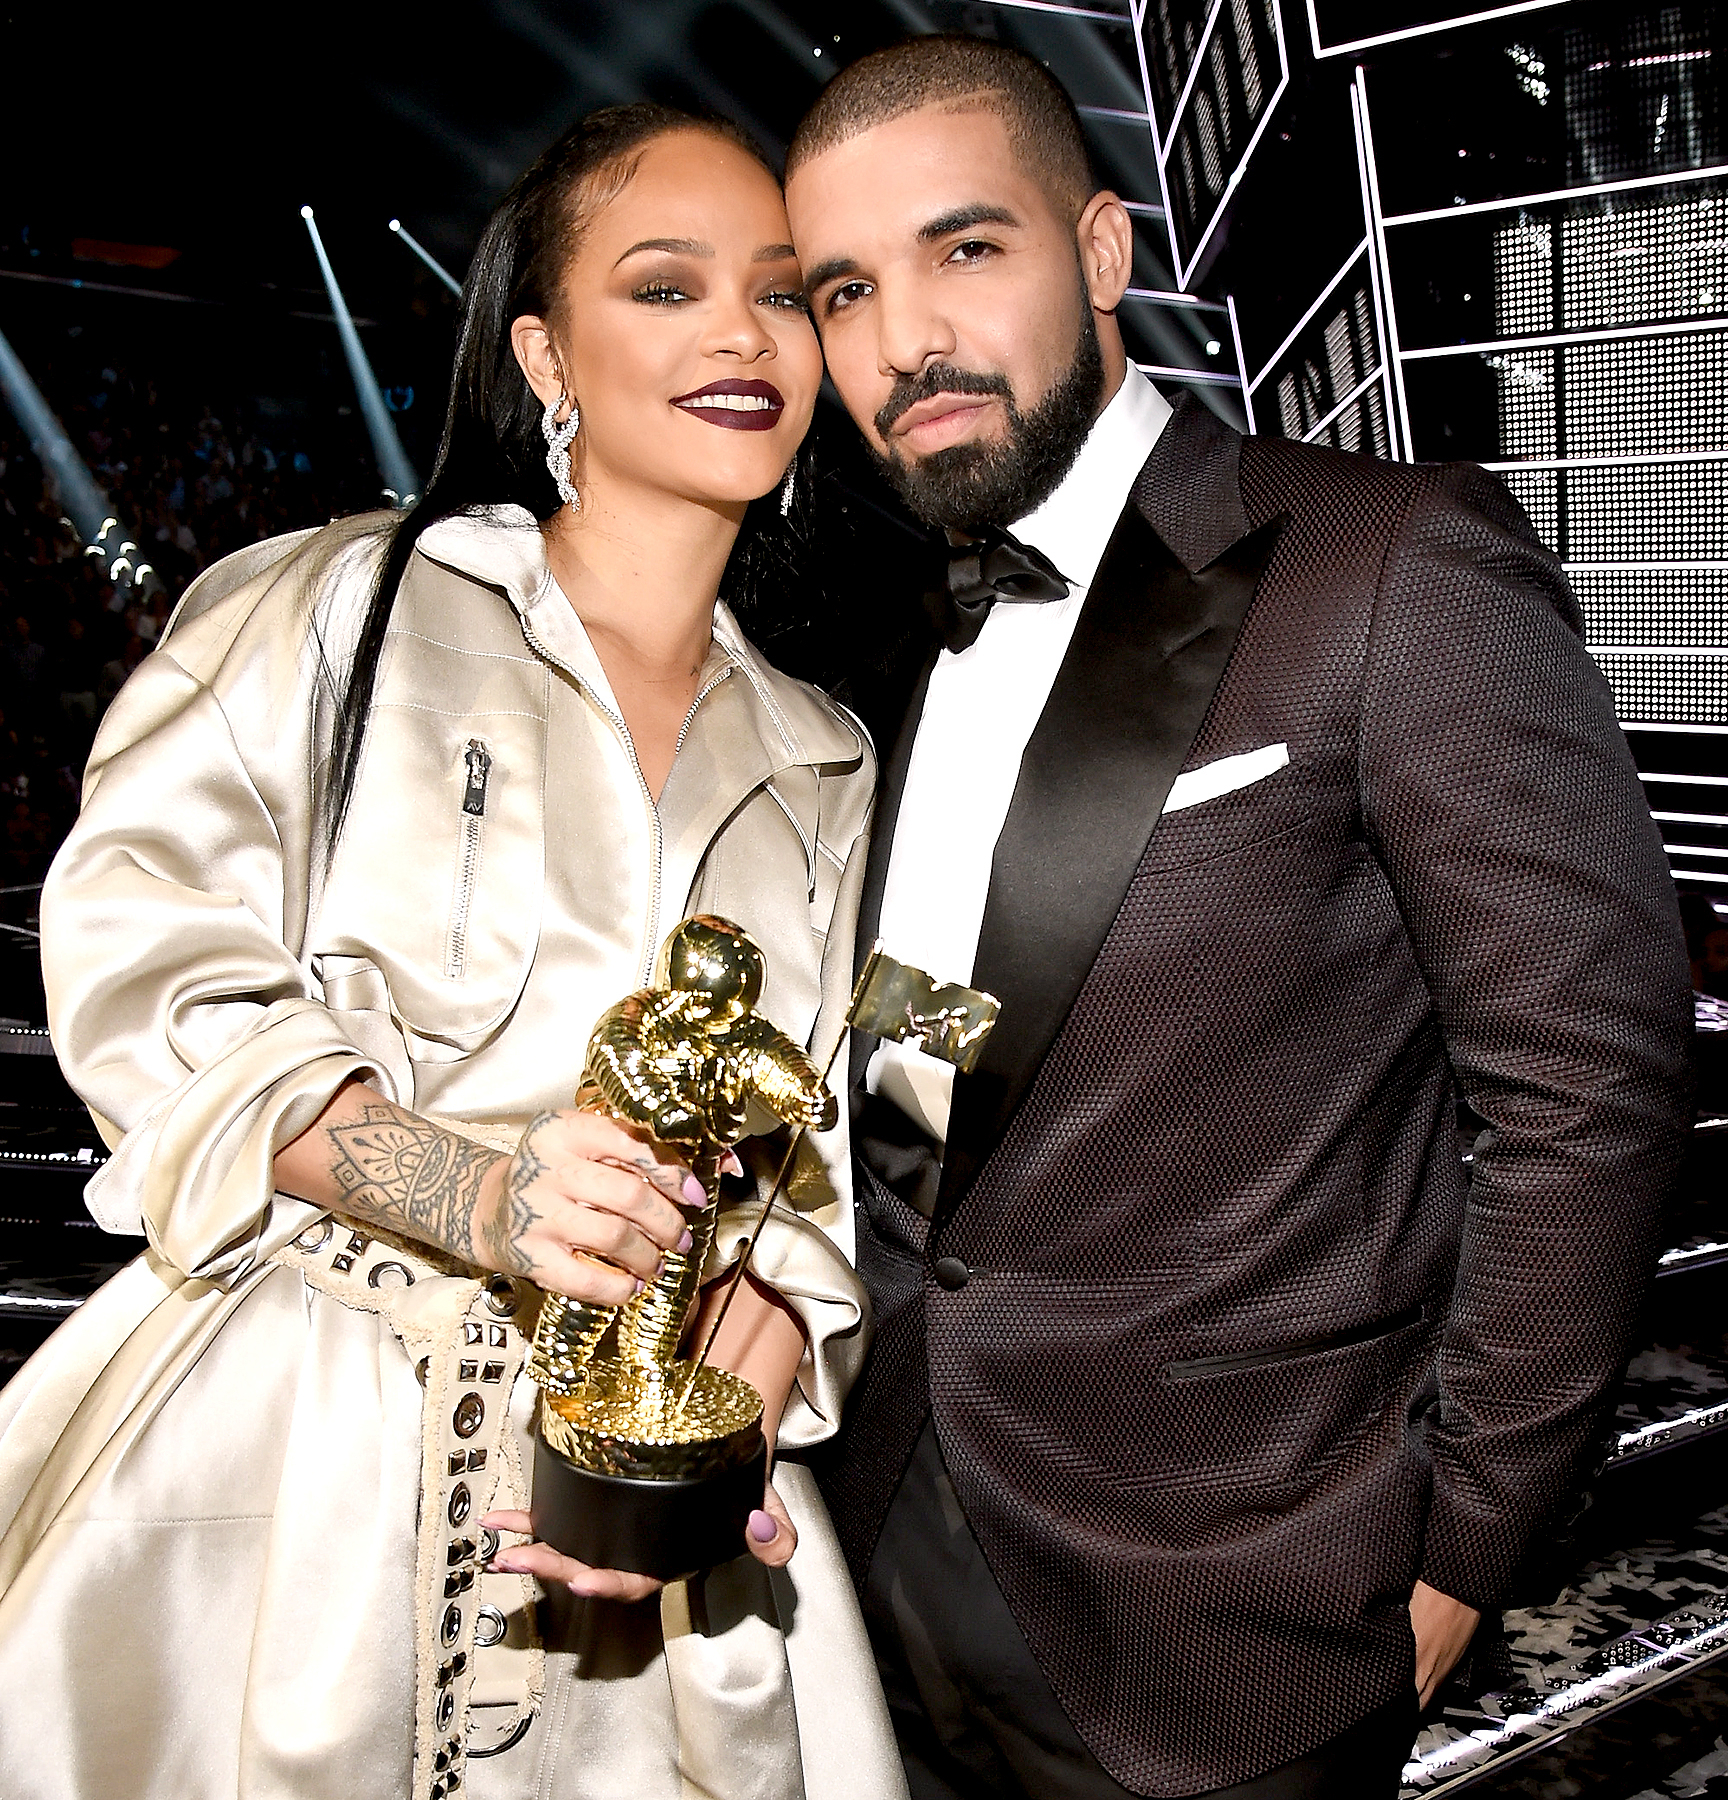 Rihanna and Drake pose onstage during the 2016 MTV Video Music Awards.